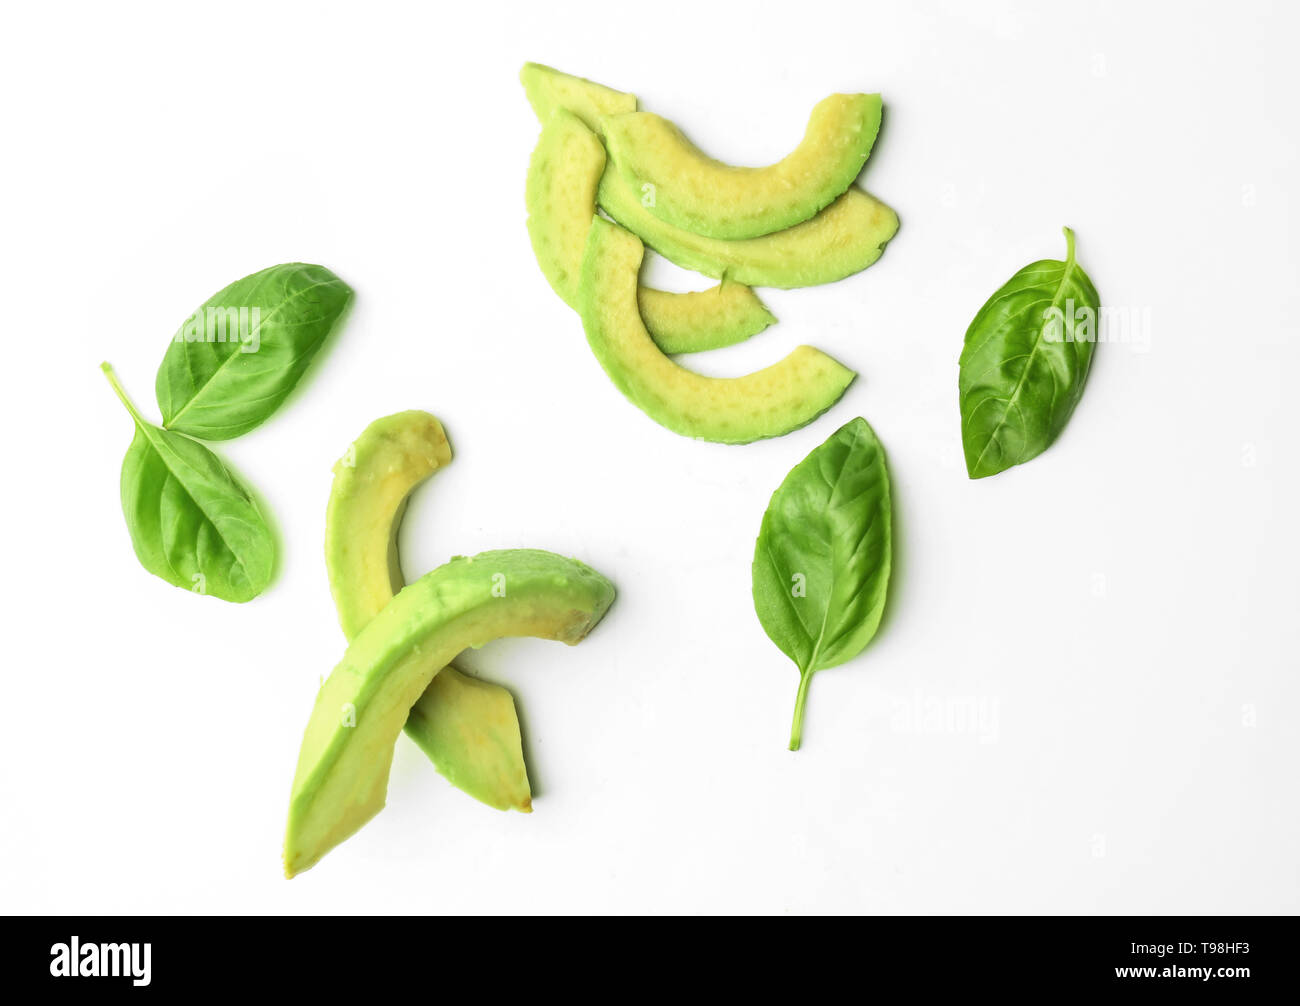 Slices of avocado and basil leaves on white background - Stock Image